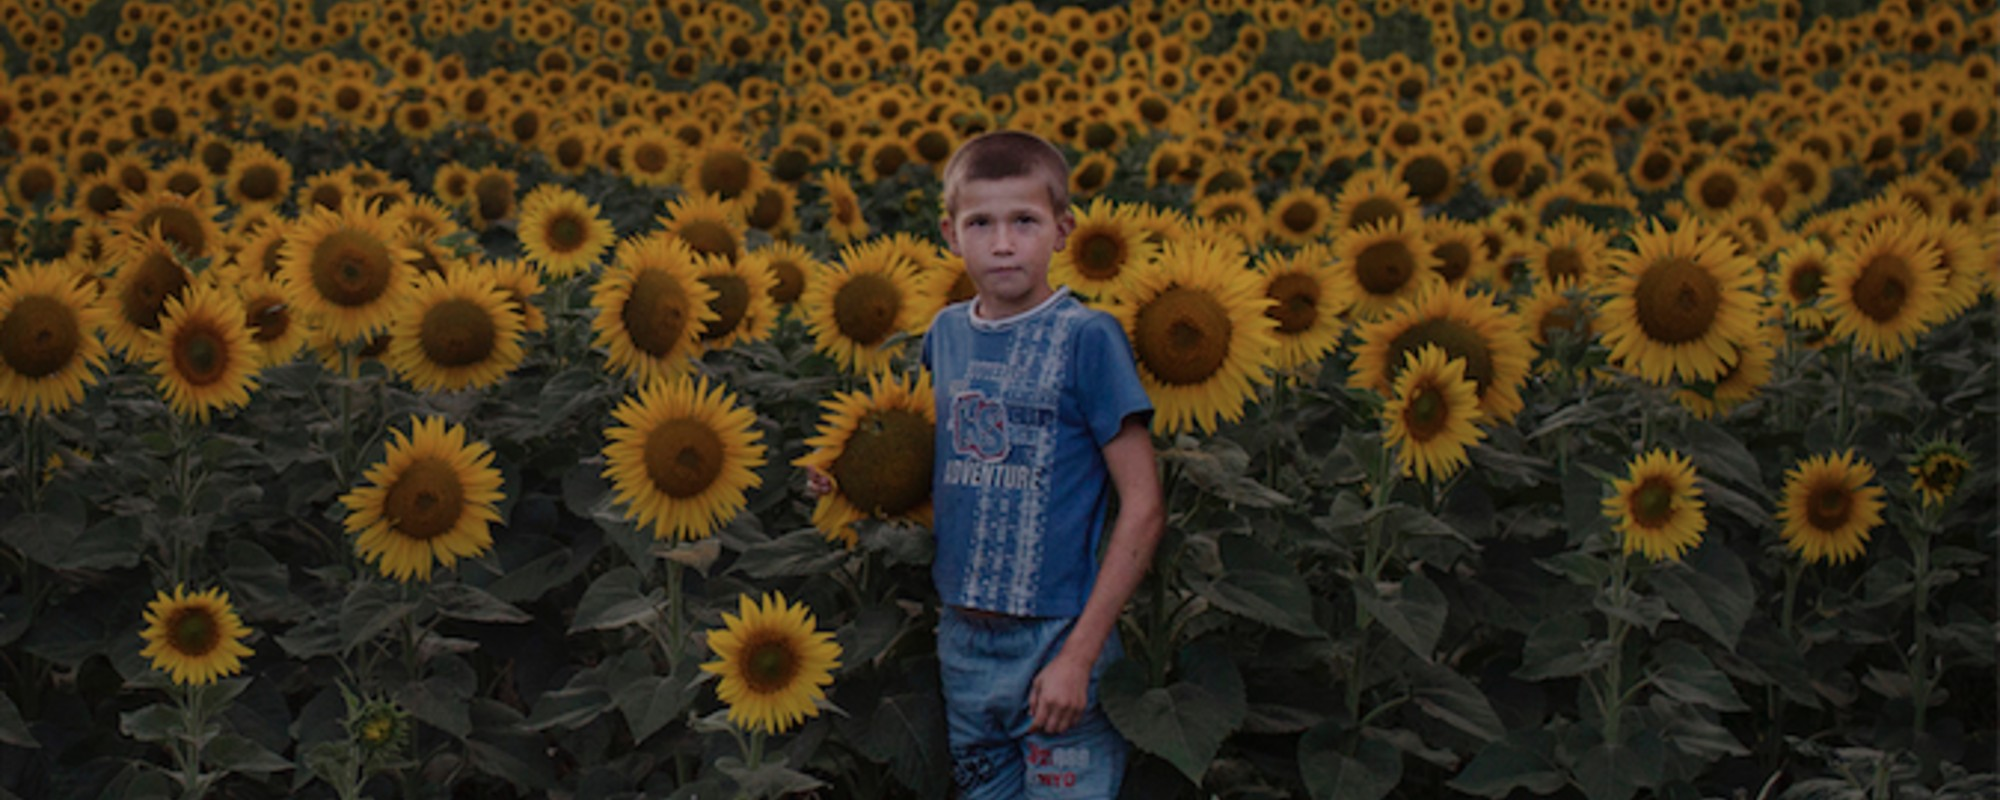 Photos of Life in Rural Moldova, Europe's Poorest Nation